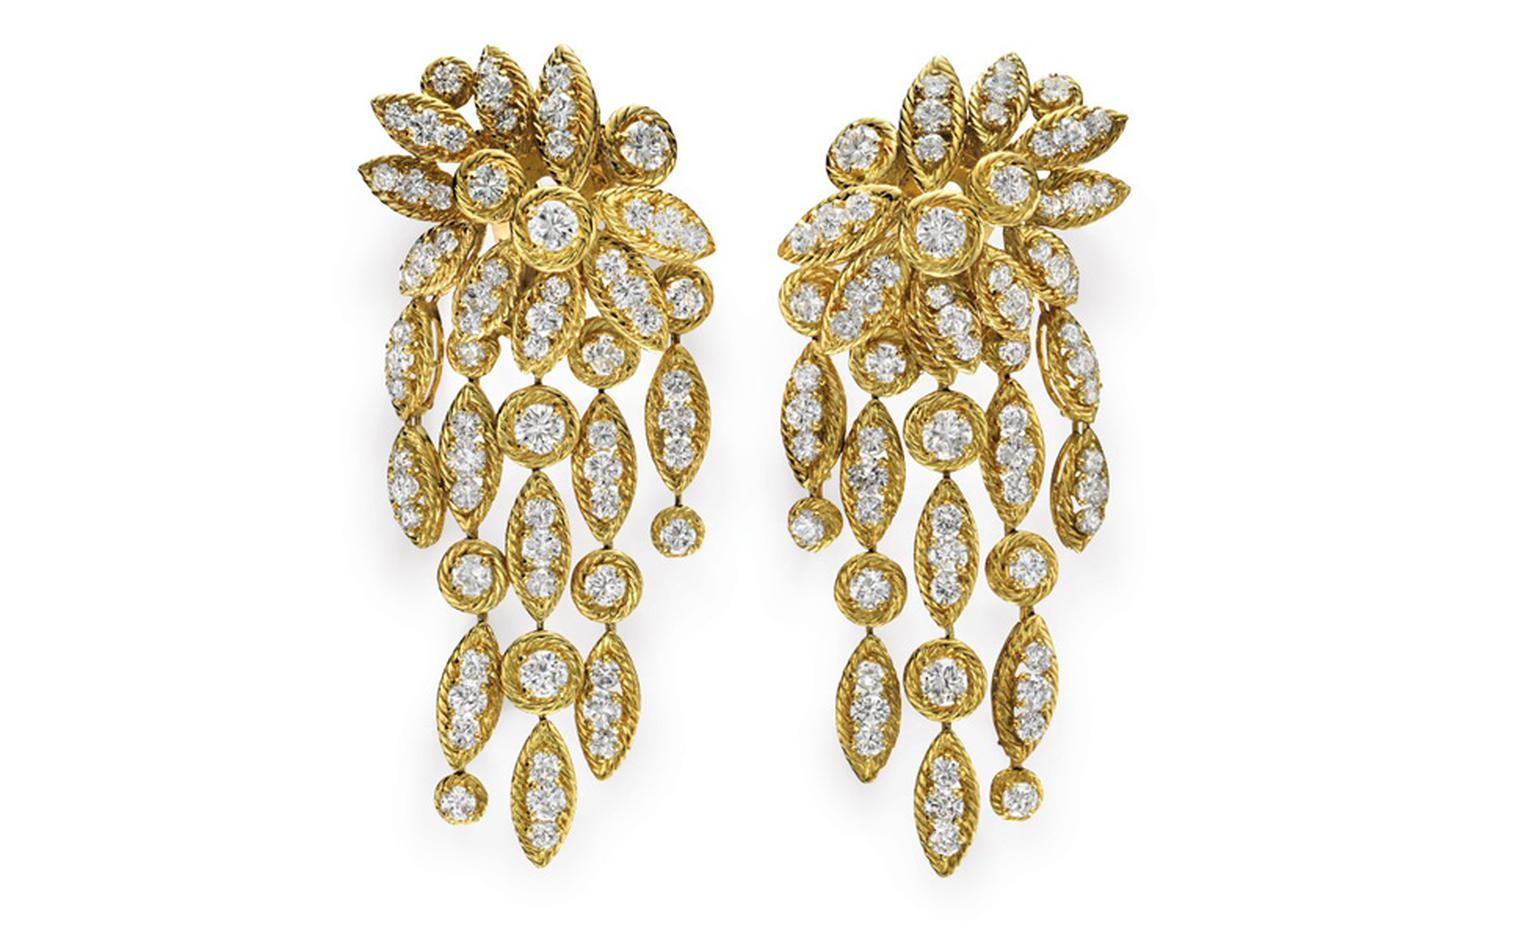 Elizabeth Taylor 'Granny Suite' or Barquerolles earrings by Van Cleef & Arpels